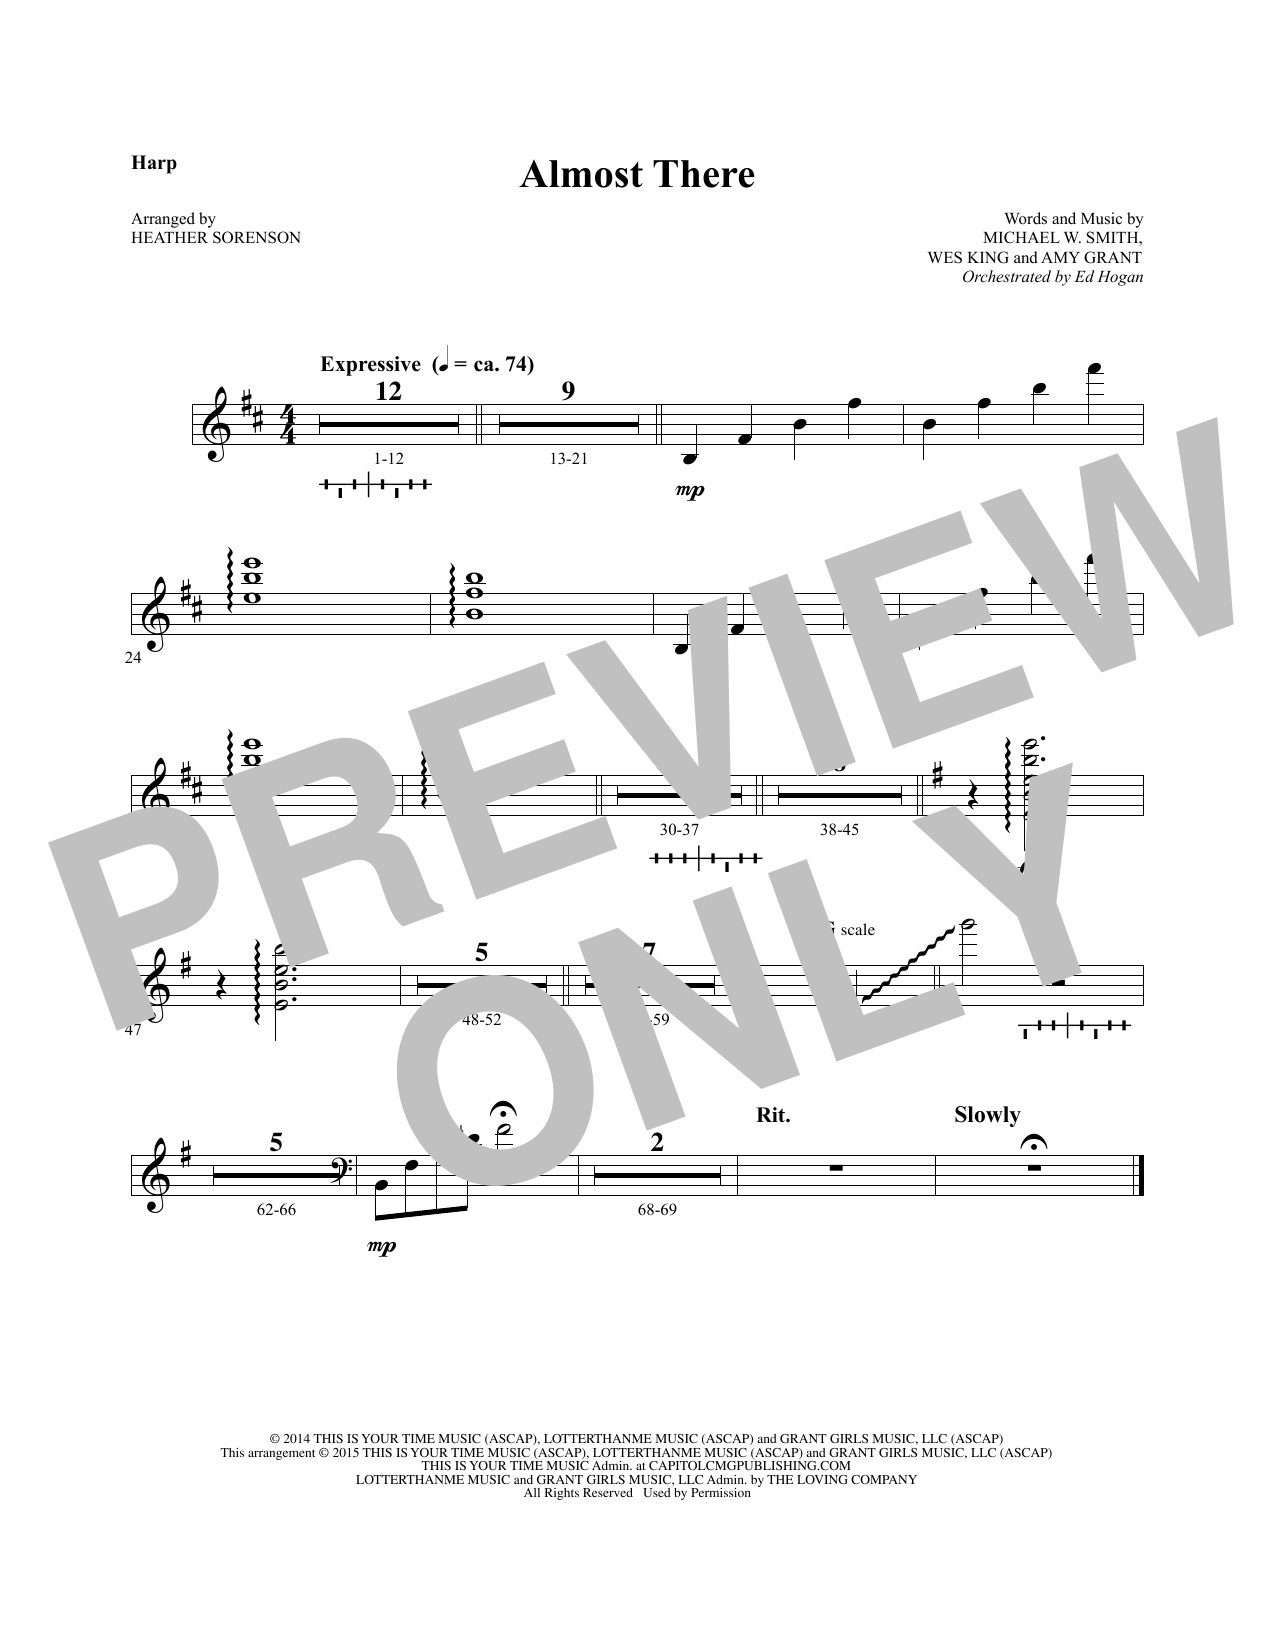 Almost There - Harp sheet music